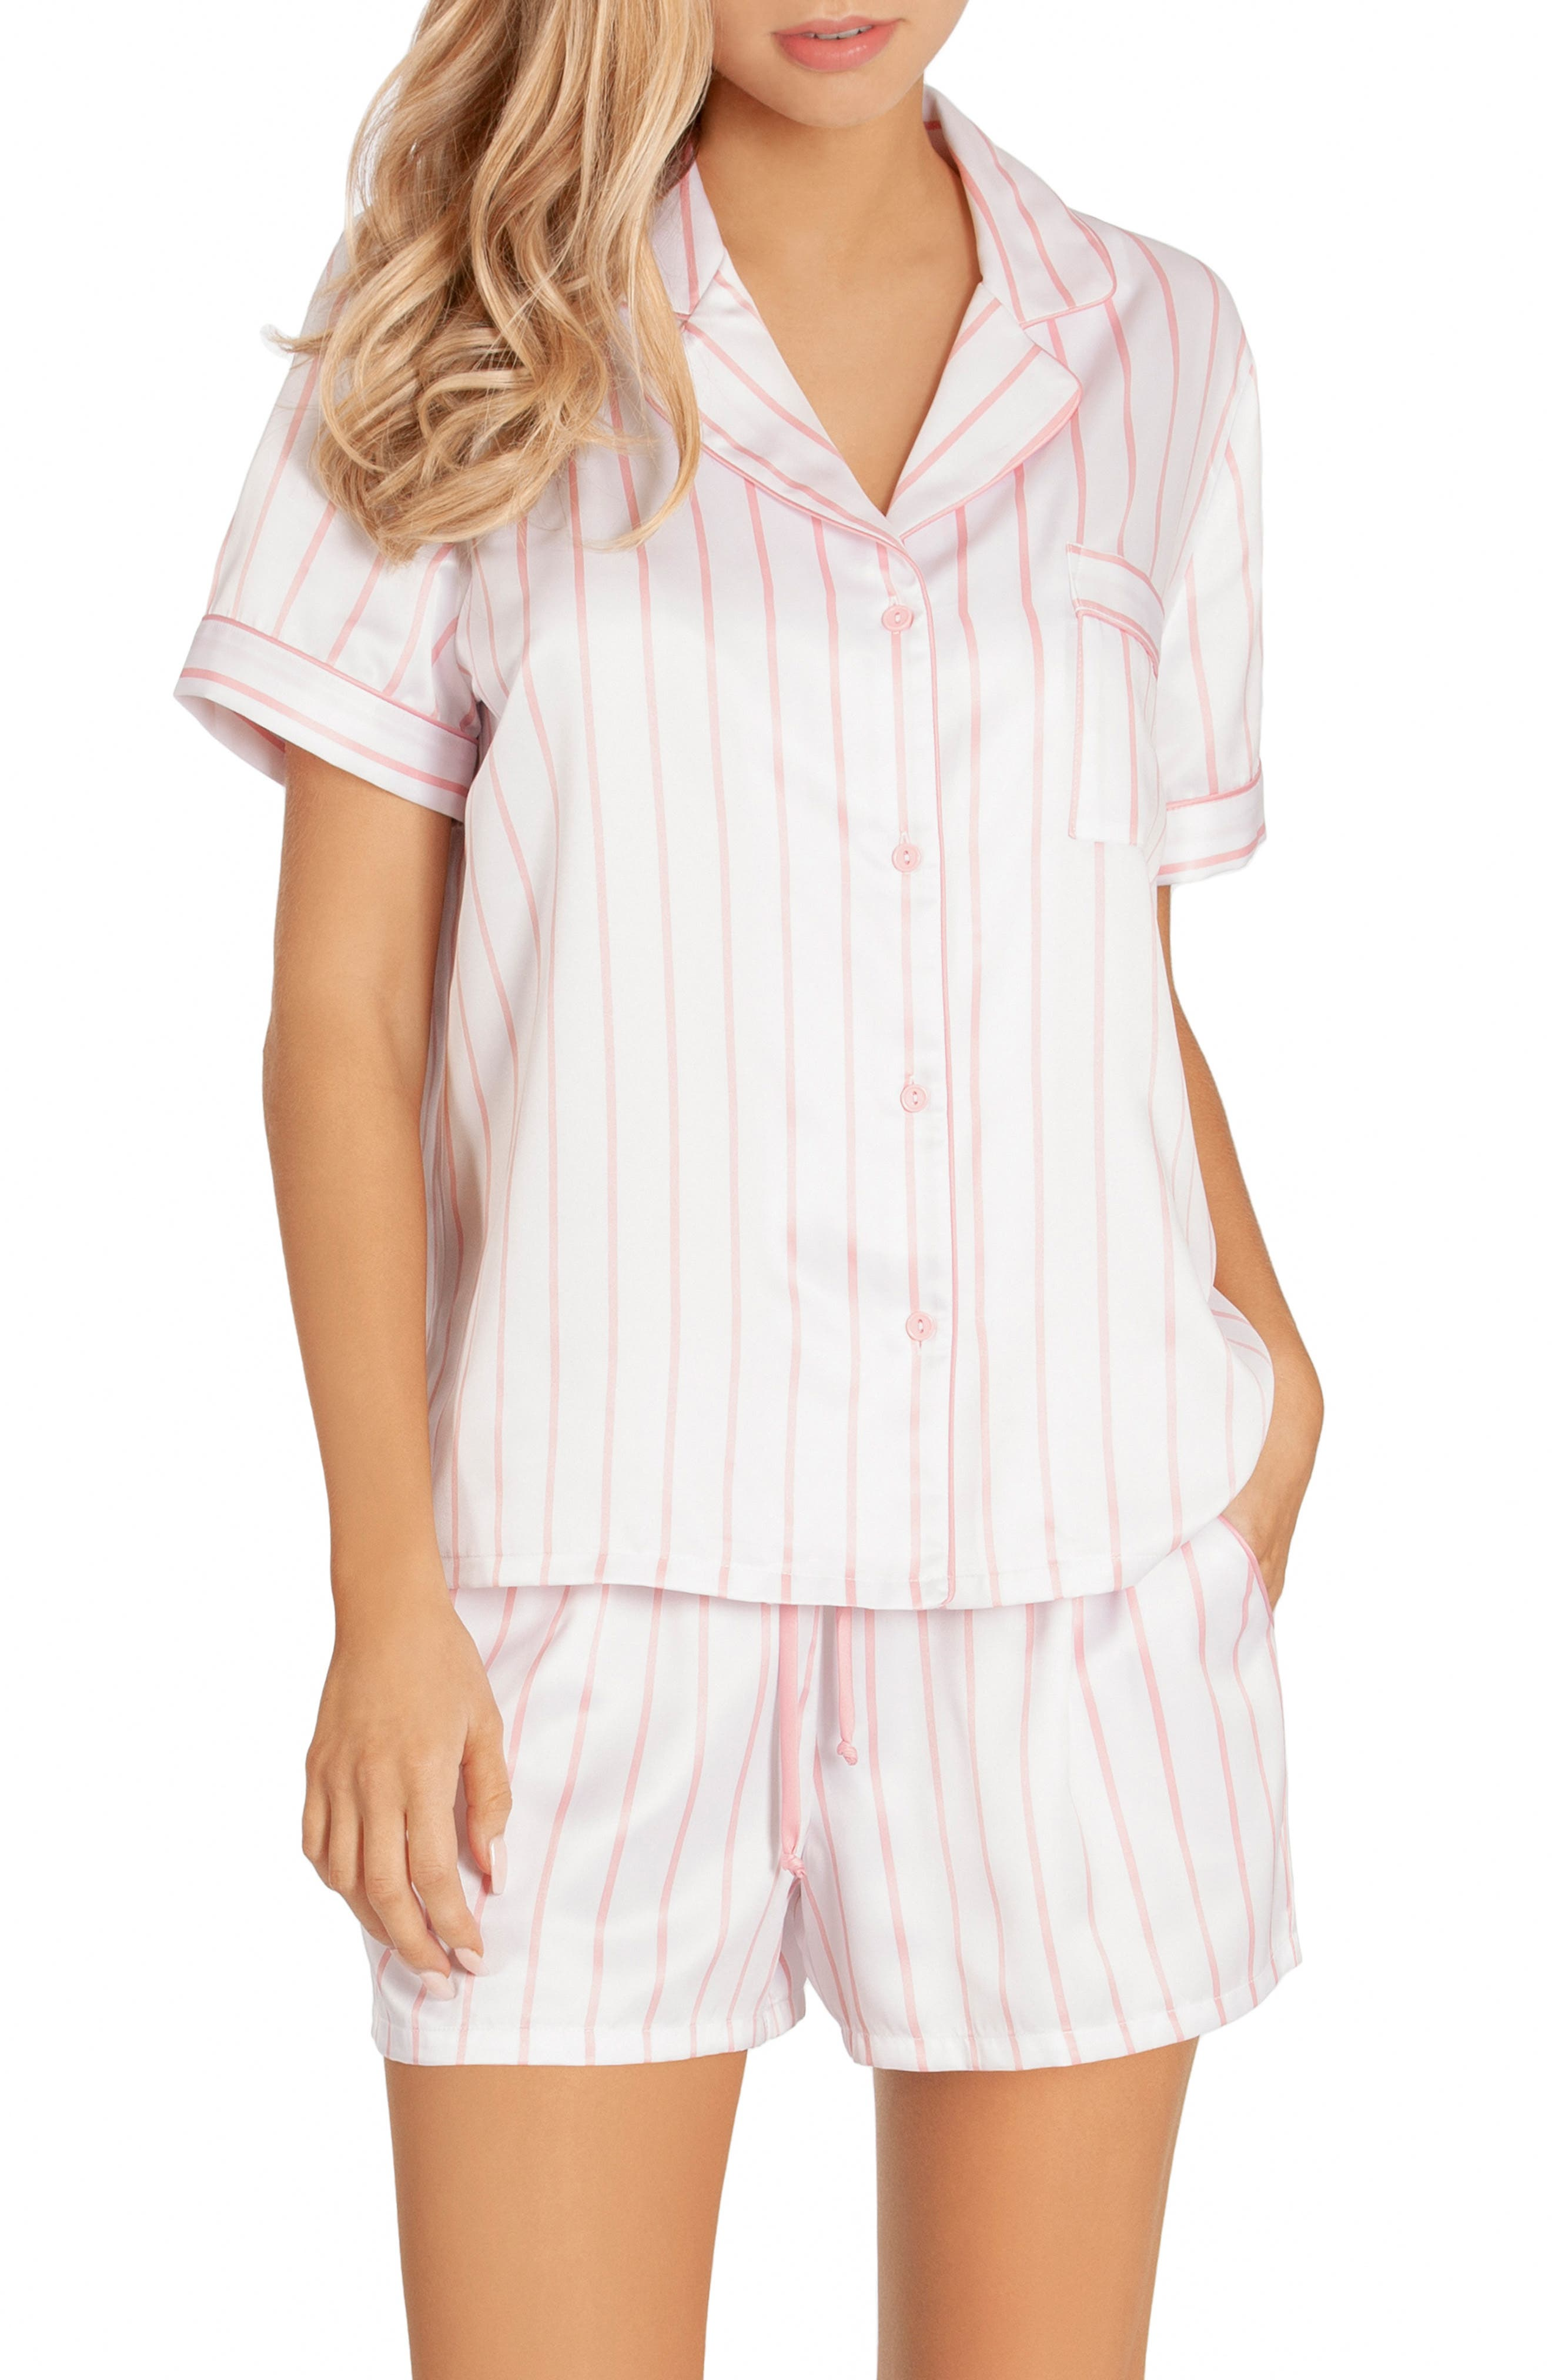 In Bloom By Jonquil Satin Short Pajamas, Pink